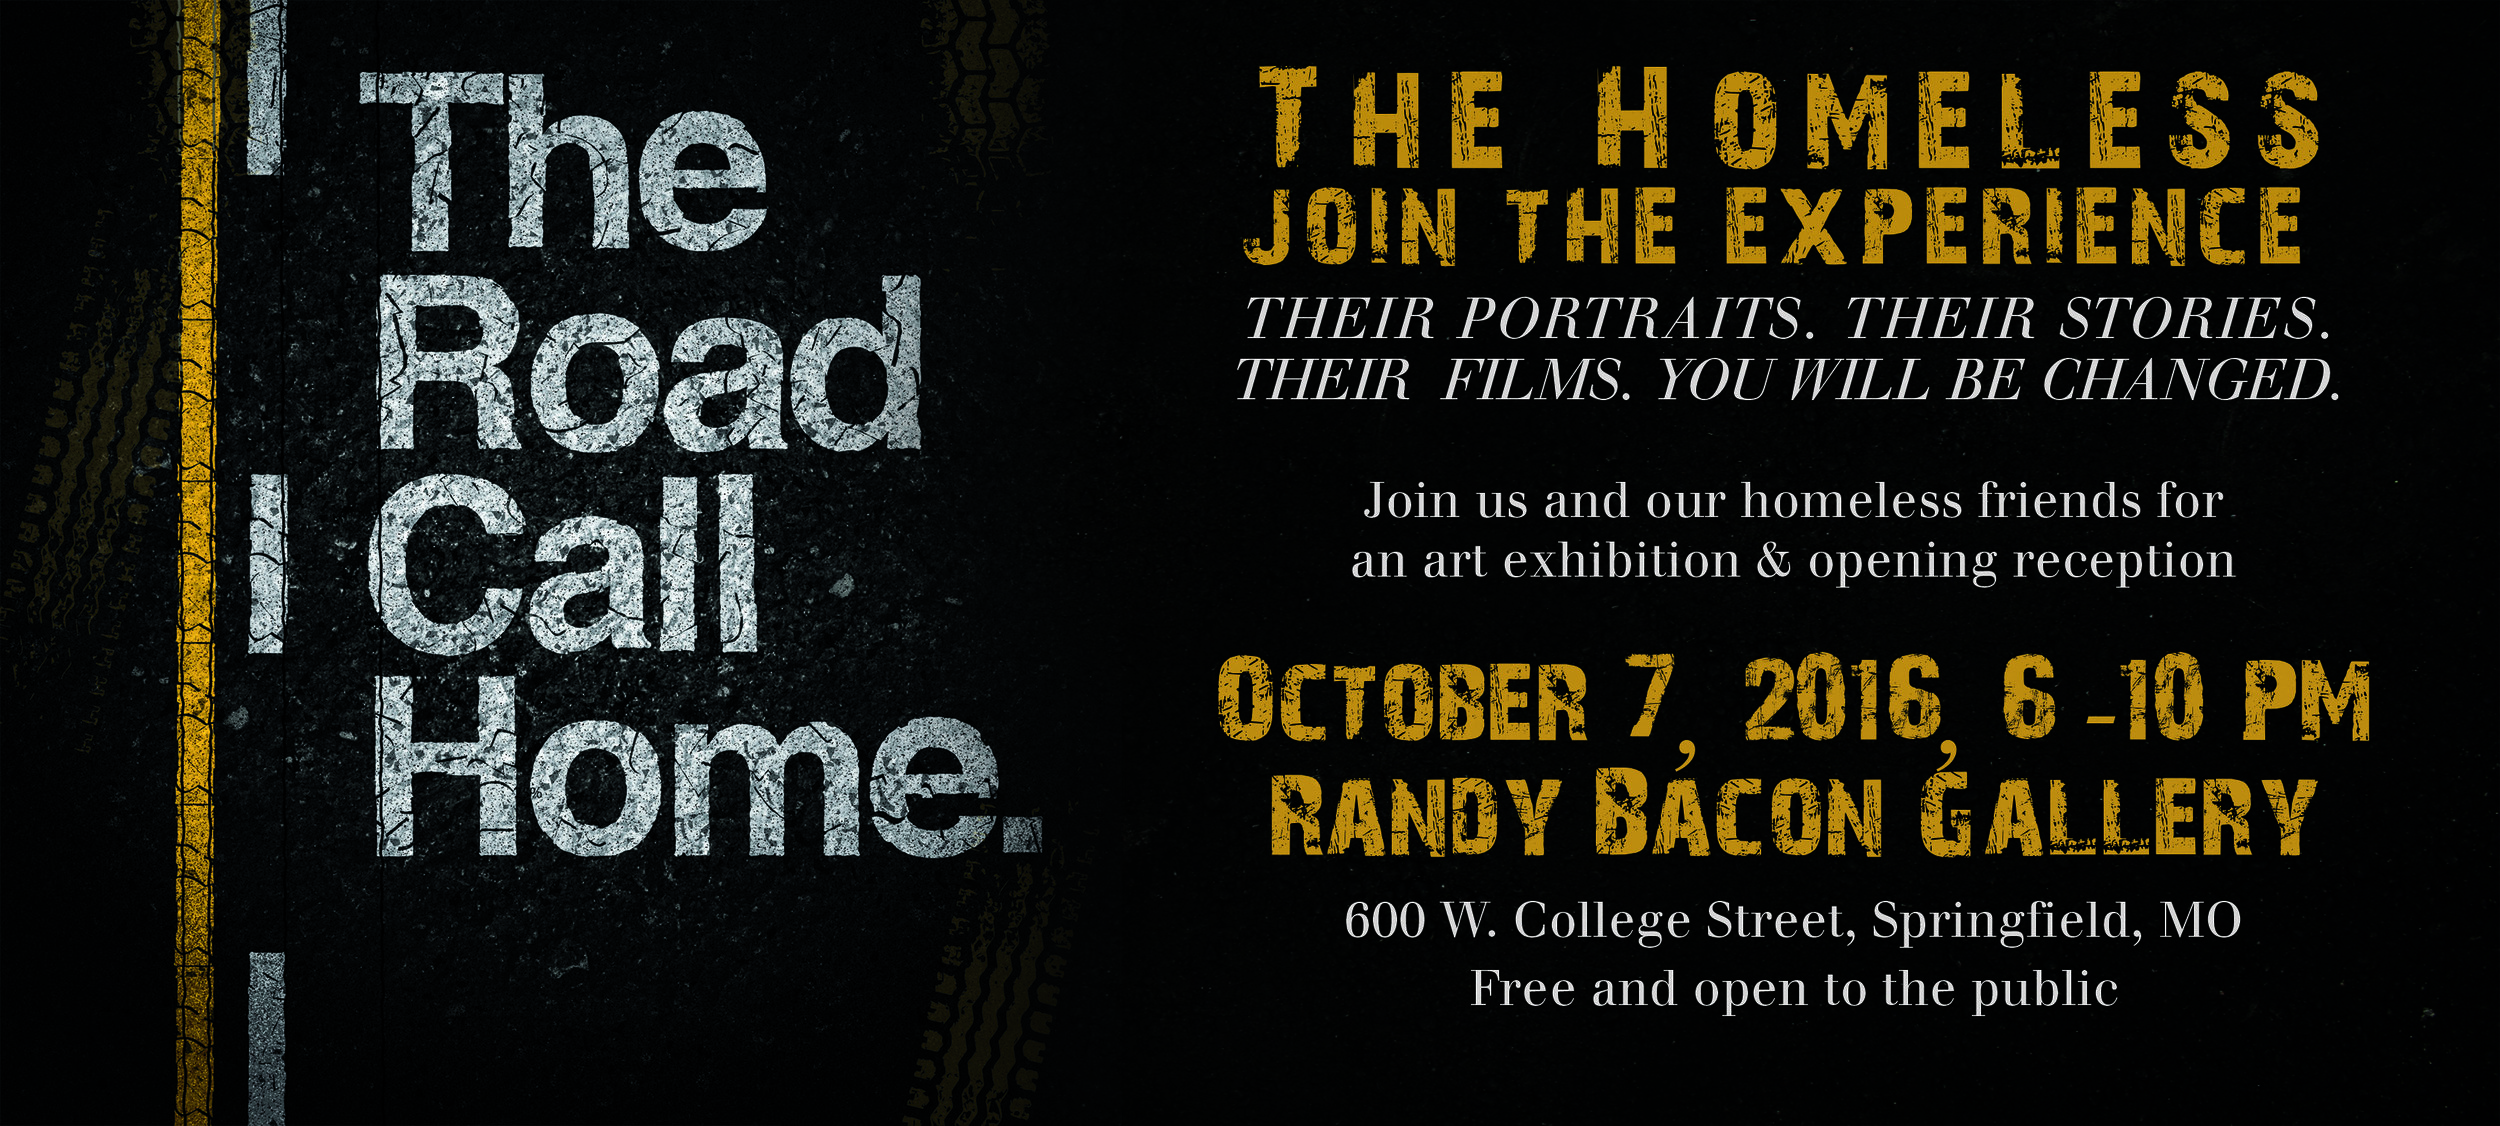 7 billion ones, the road i call home, randy bacon, gathering friends for the homeless, homeless, homelessness